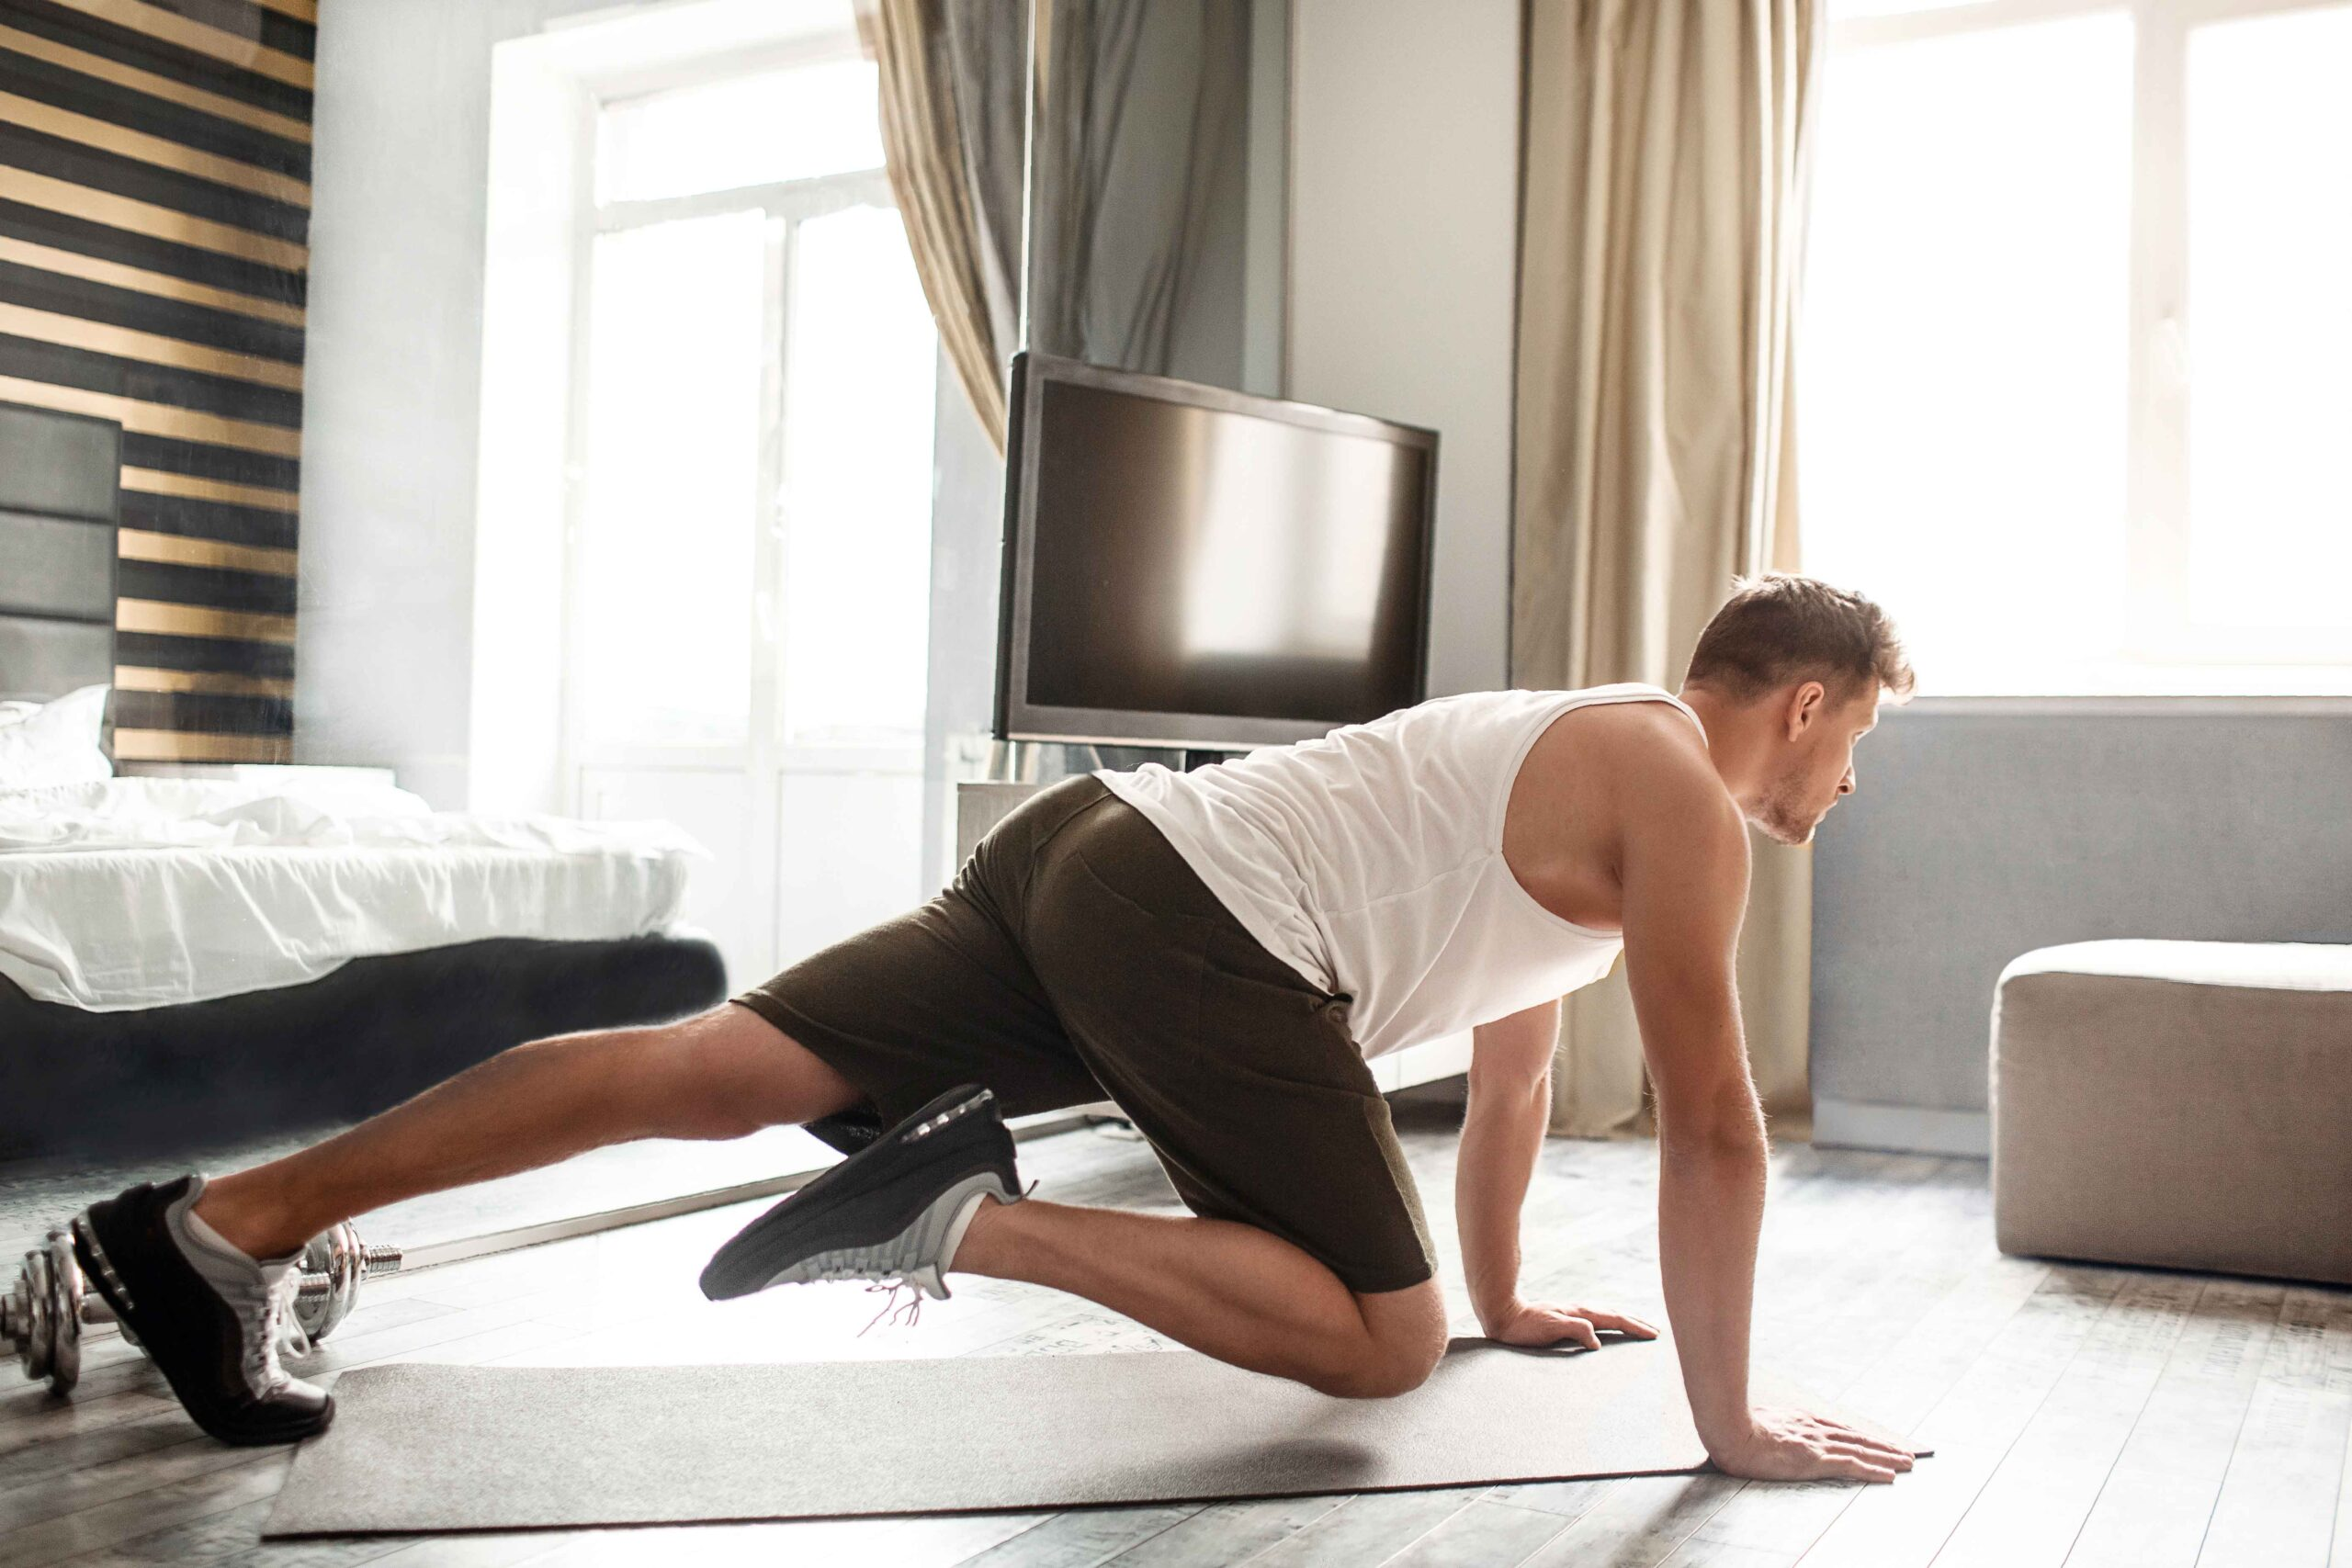 Young well-built man go in for sports in hotel room. He stand on hands and move legs. Guy look straight forward. He exercise alone in room.